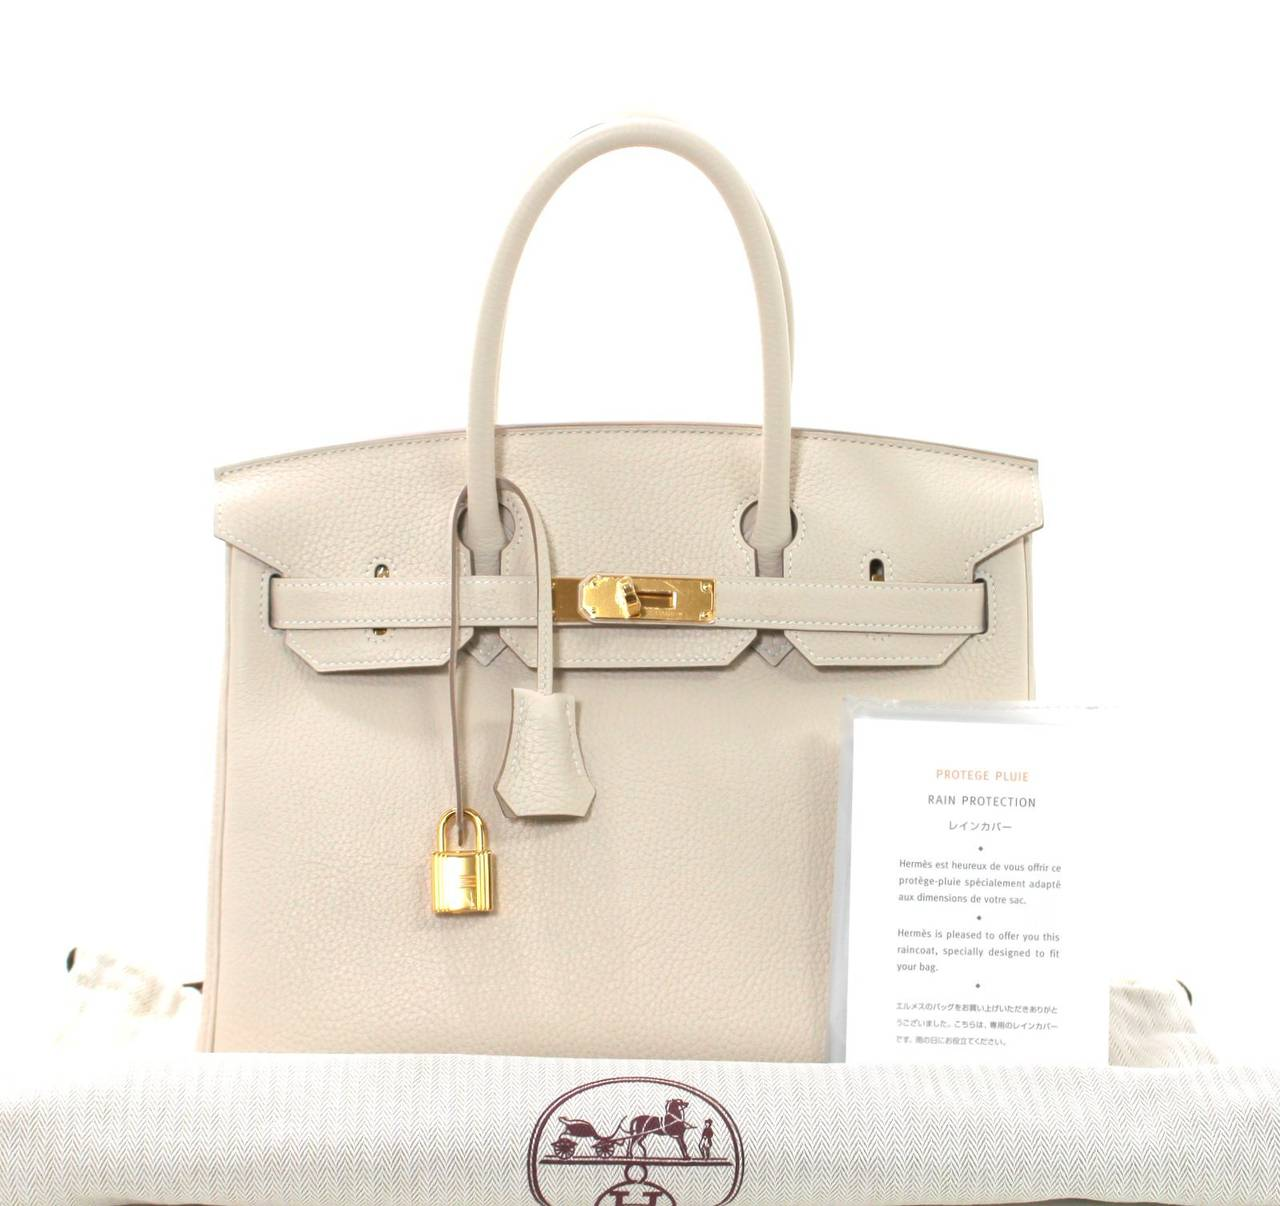 Hermes Birkin Bag in Craie Clemence with Gold- Bone color 30 cm 10